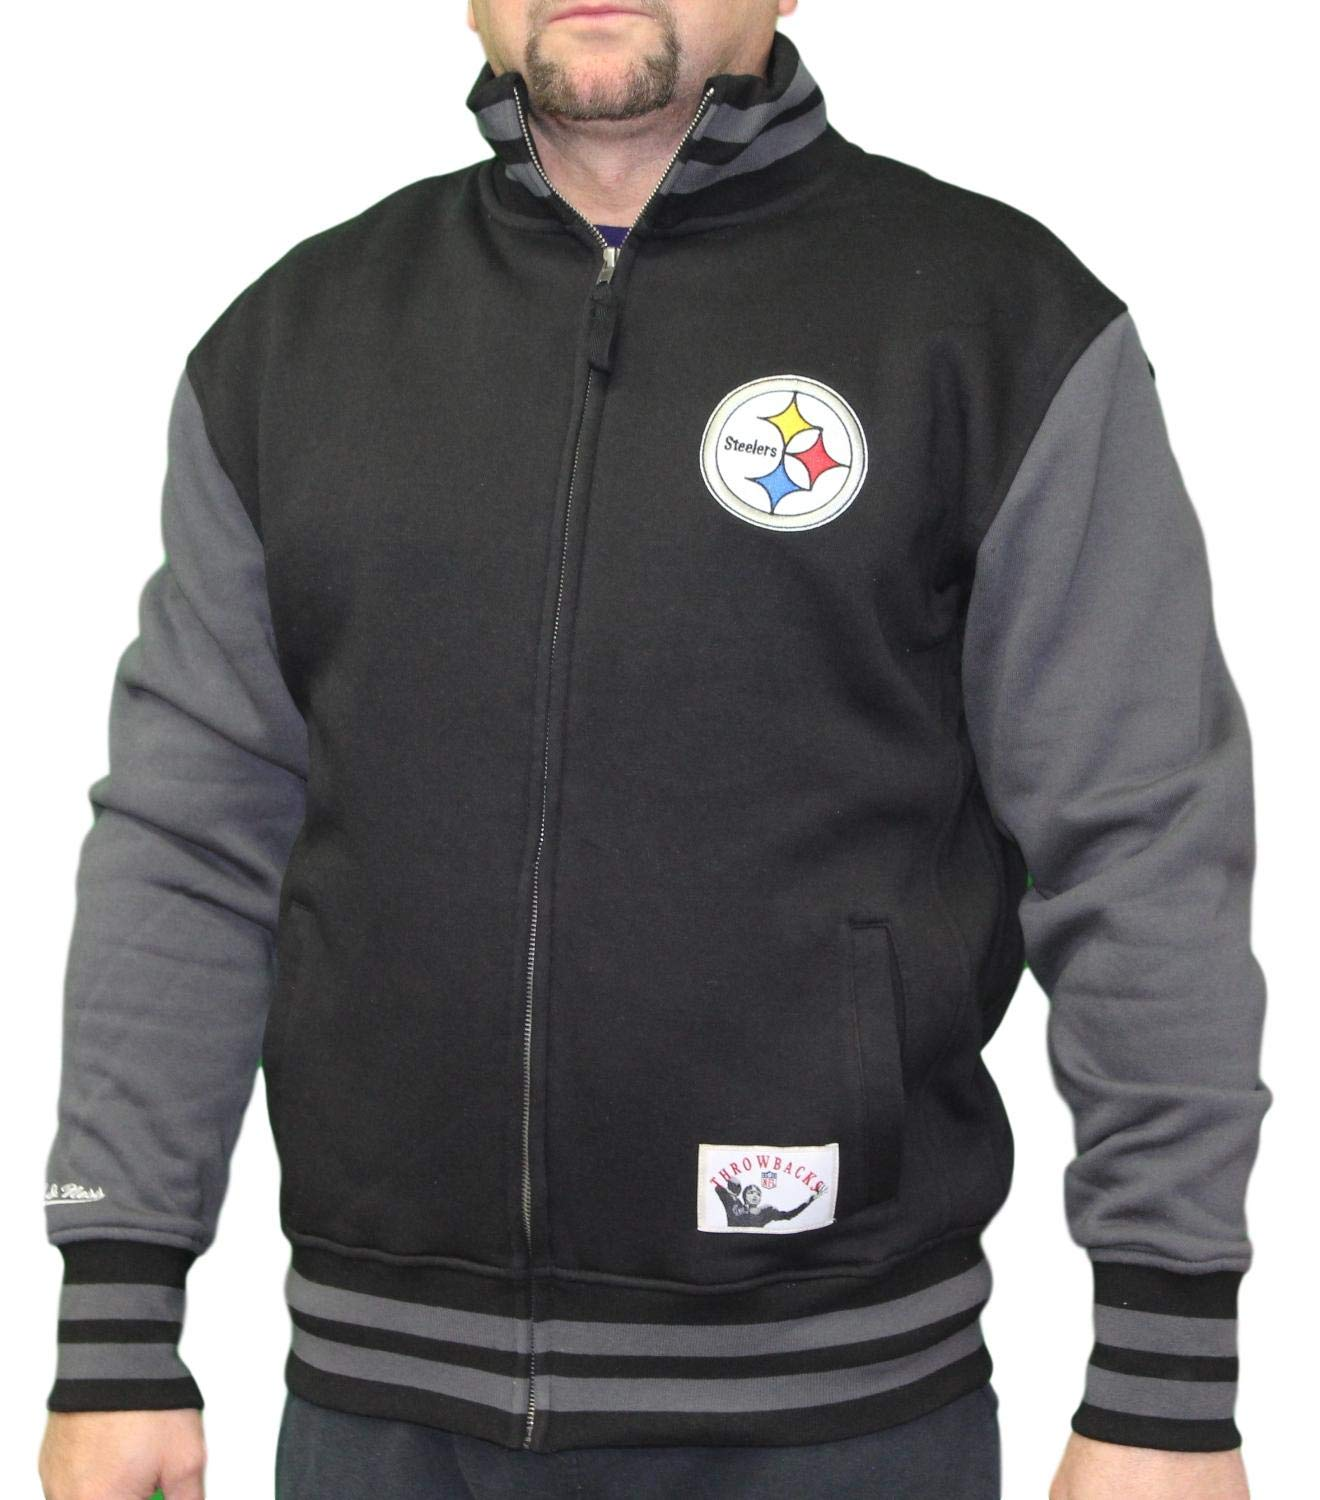 first rate 0bff4 565af Amazon.com : Mitchell & Ness Pittsburgh Steelers NFL Men's ...